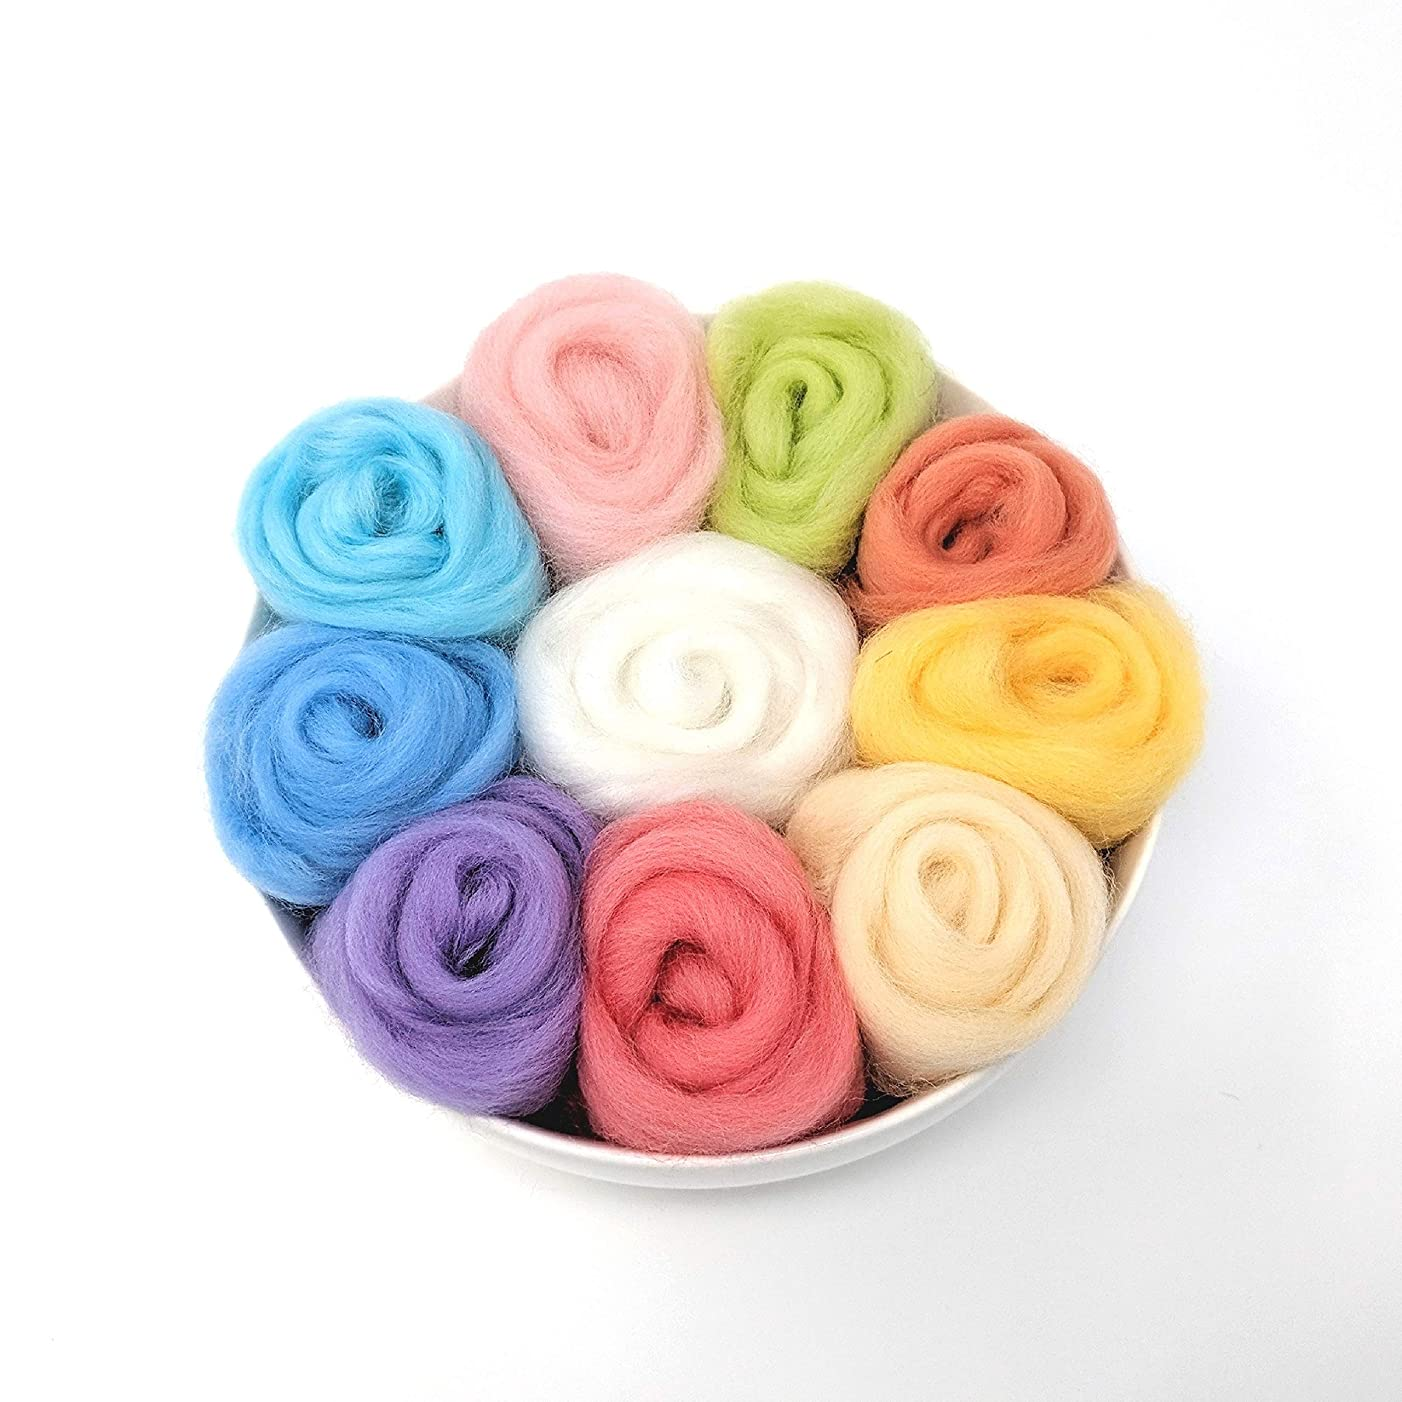 Needle Felting Wool Set of 10 Colors - Pastel Series, 8 Grams Each Color (Pastel)